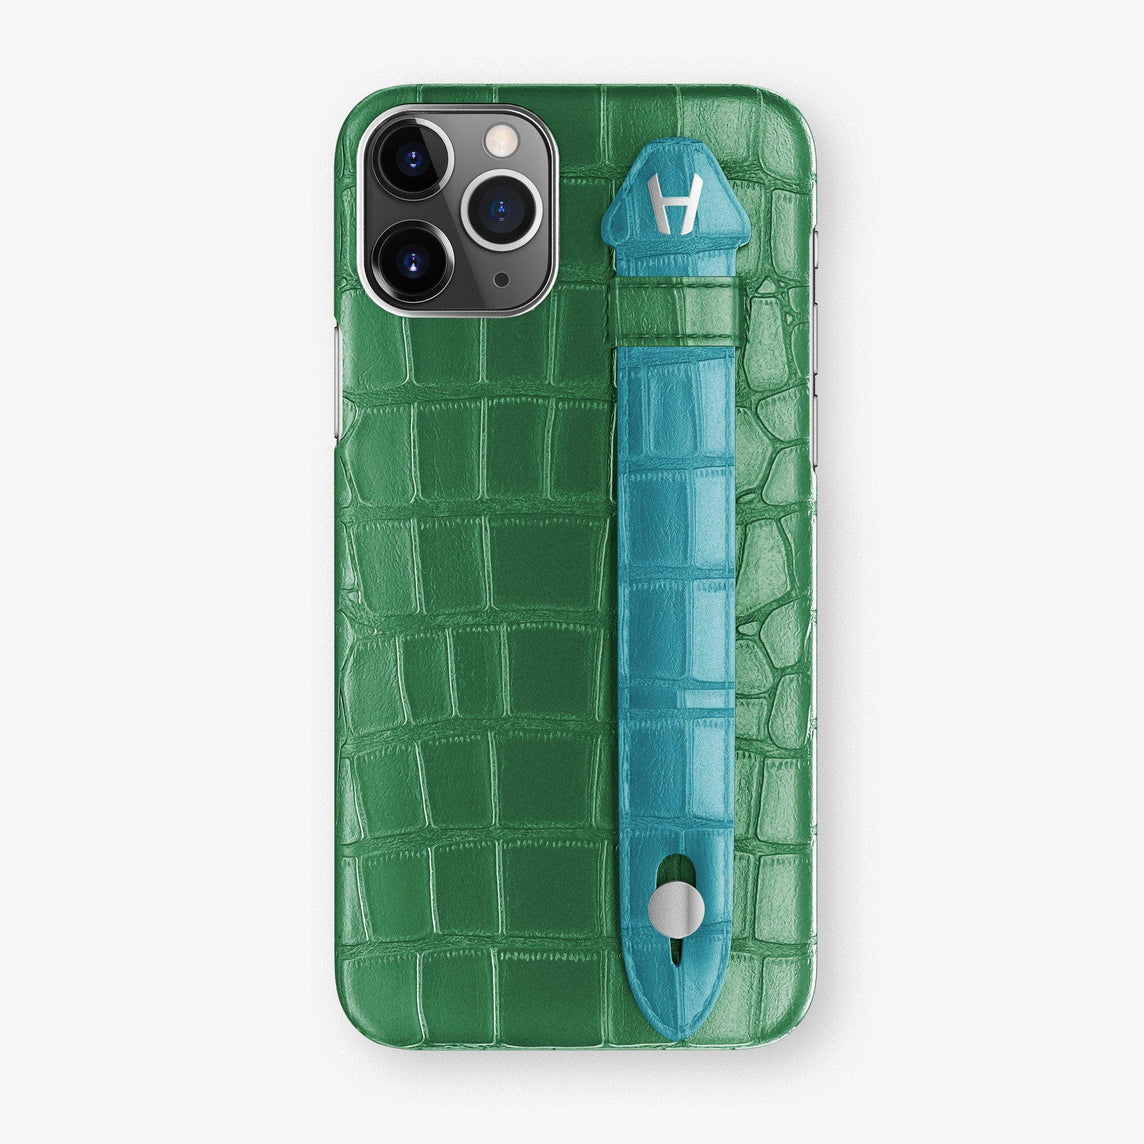 Alligator Finger Case iPhone 11 | Green Emerald/Blue Teal  - Stainless Steel